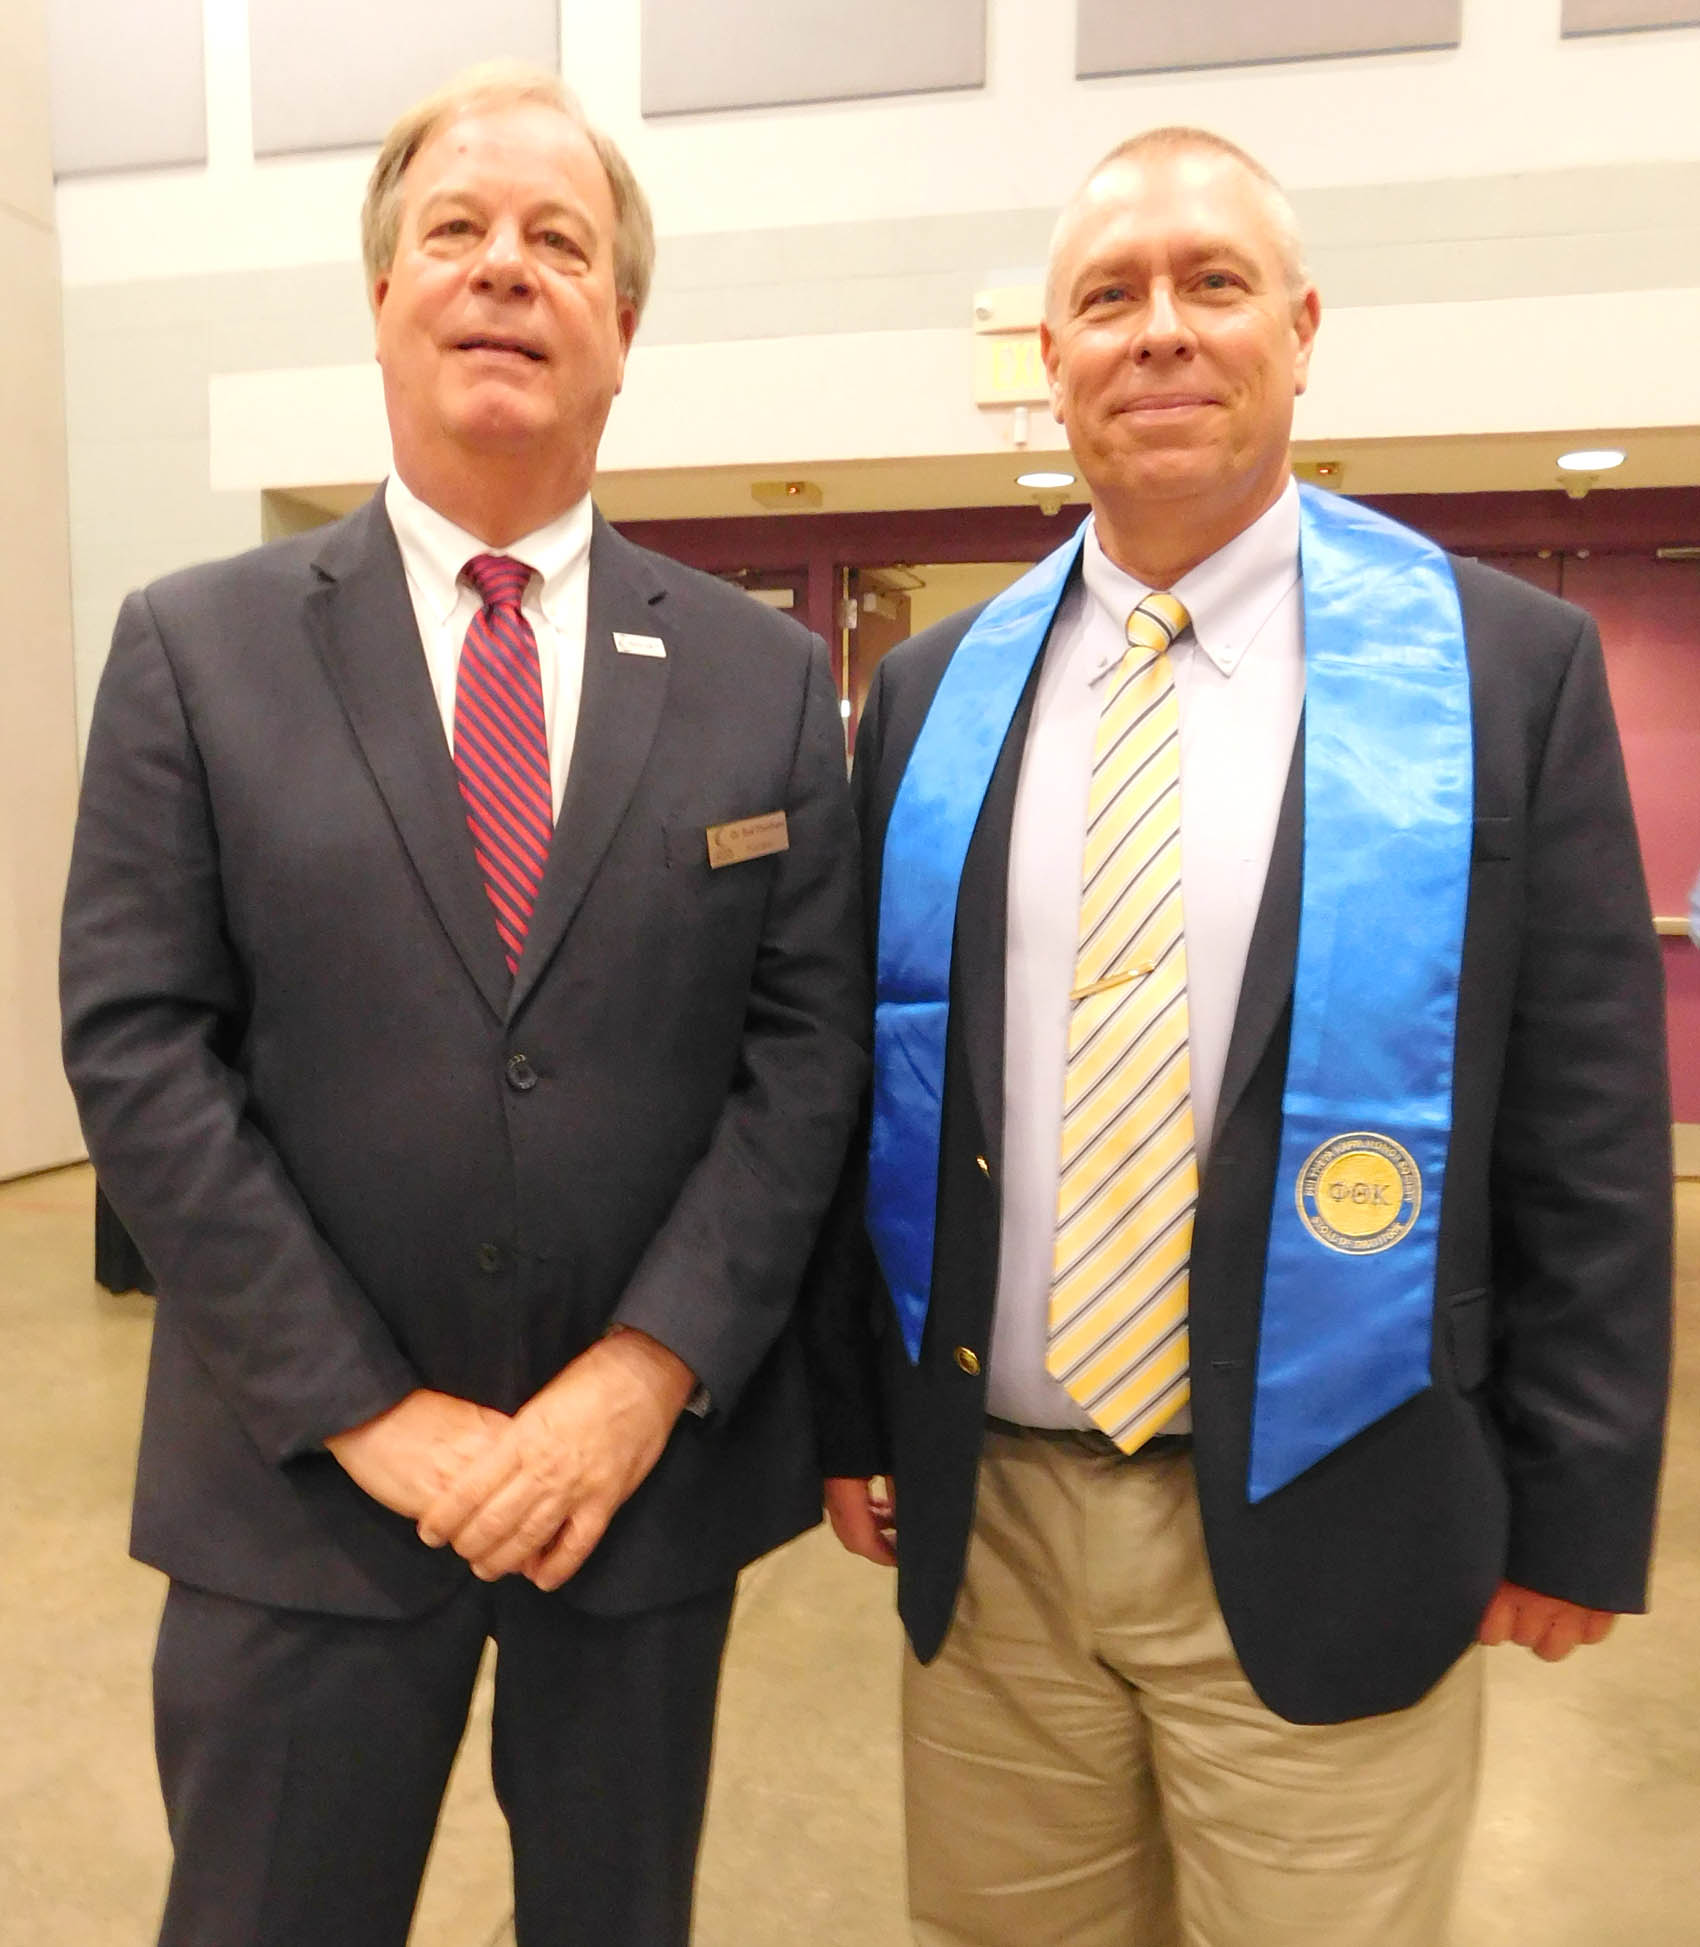 Read the full story, PTK going strong at CCCC